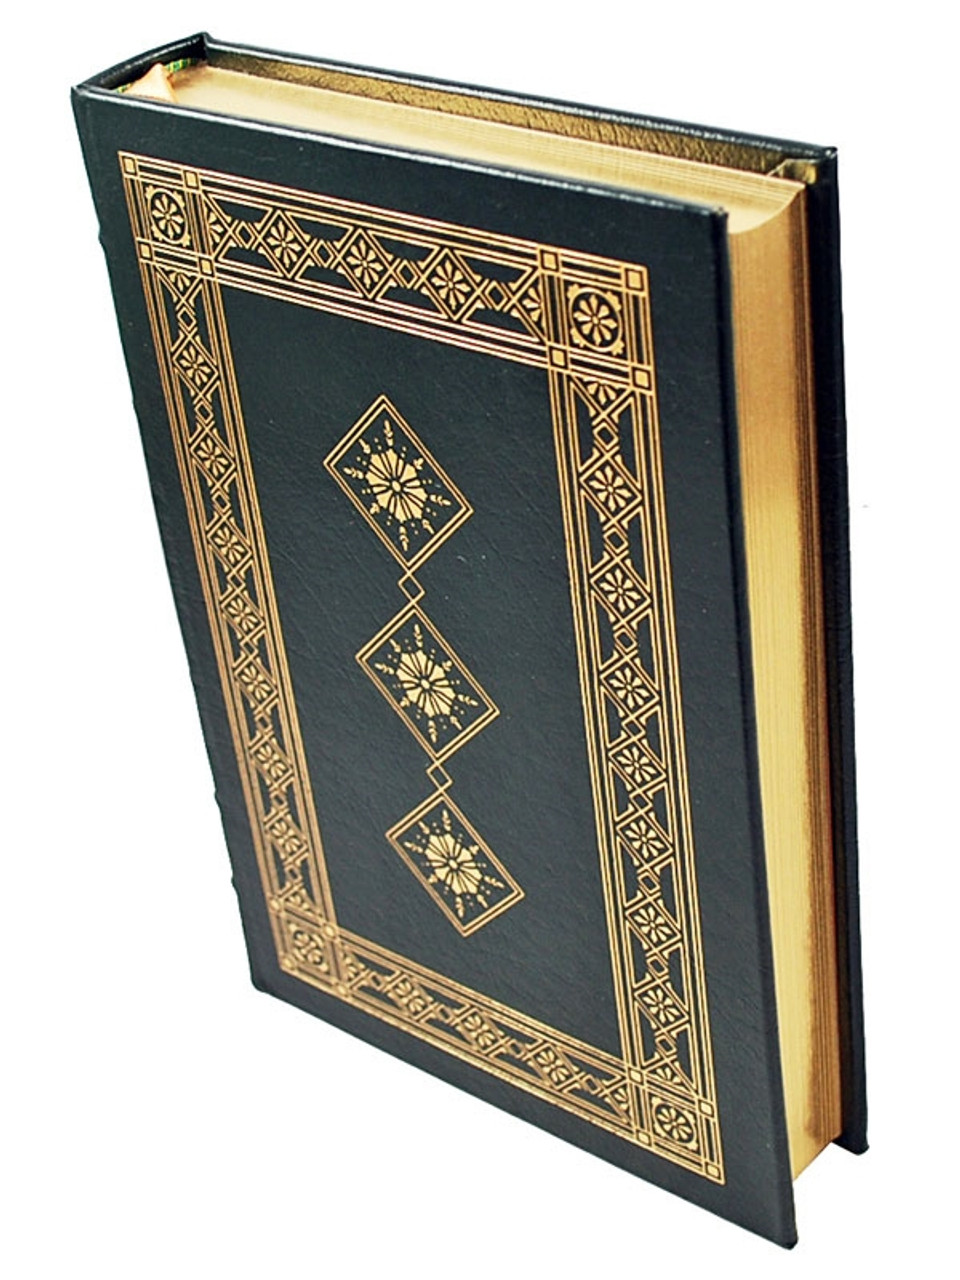 """Easton Press, Jonathan Weiner """"The Beak of the Finch: A Story of Evolution in Our Time"""" Leather Bound Collector's Edition"""